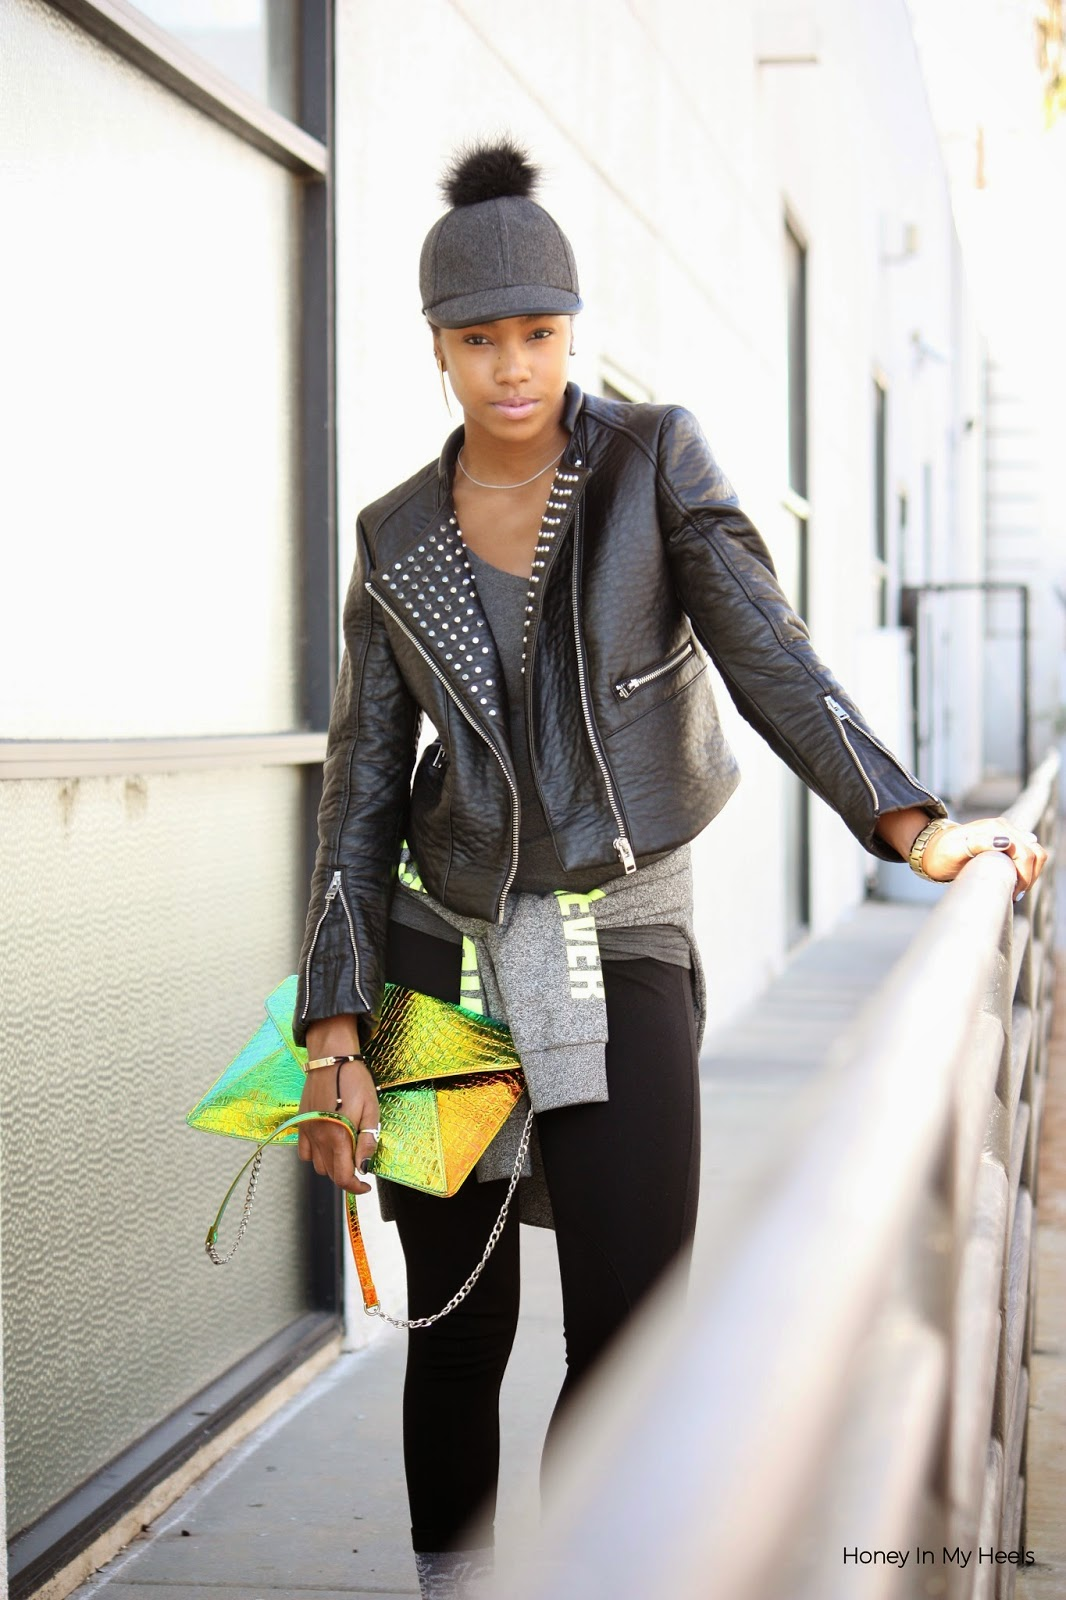 Marquise C Brown fashion blog Honey In My Heels wearing BCBGeneration pom pom baseball cap H&M faux leather studded jacket and Nasty Gal crossbody bag